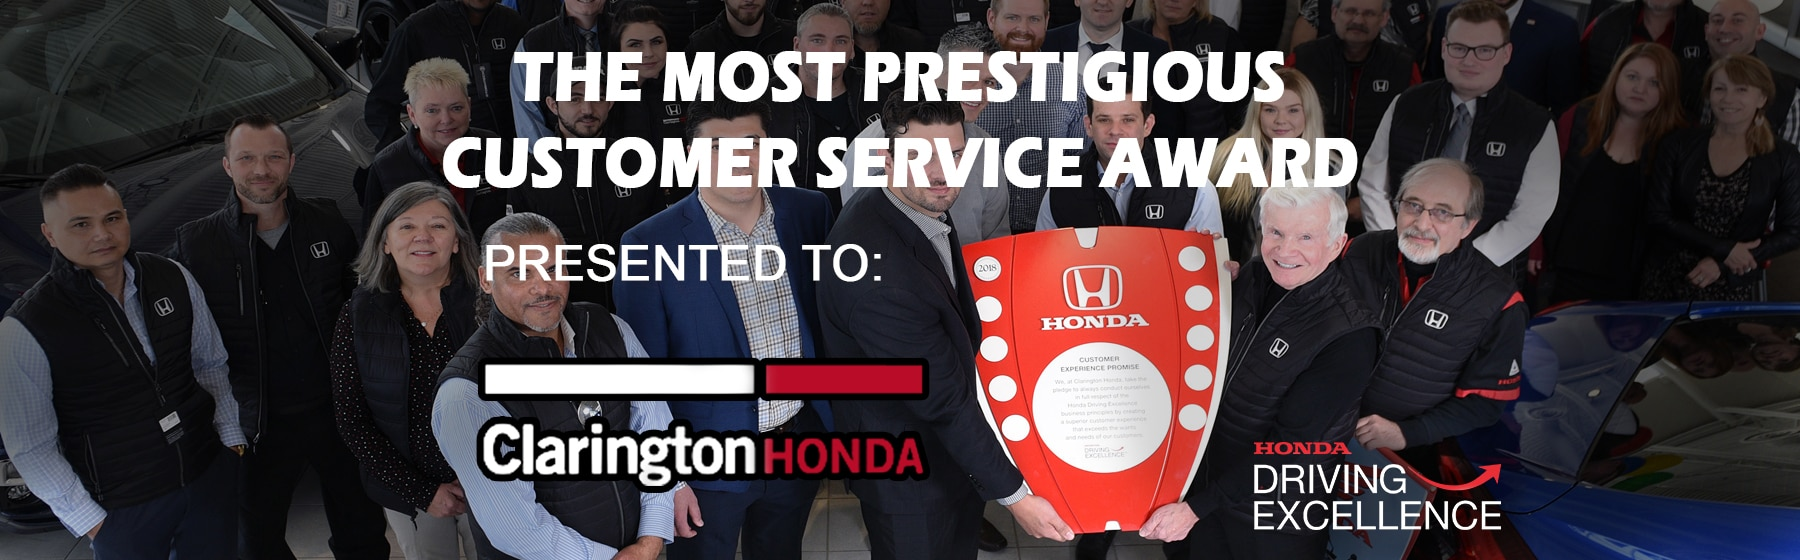 Honda Drivers Excellence Award